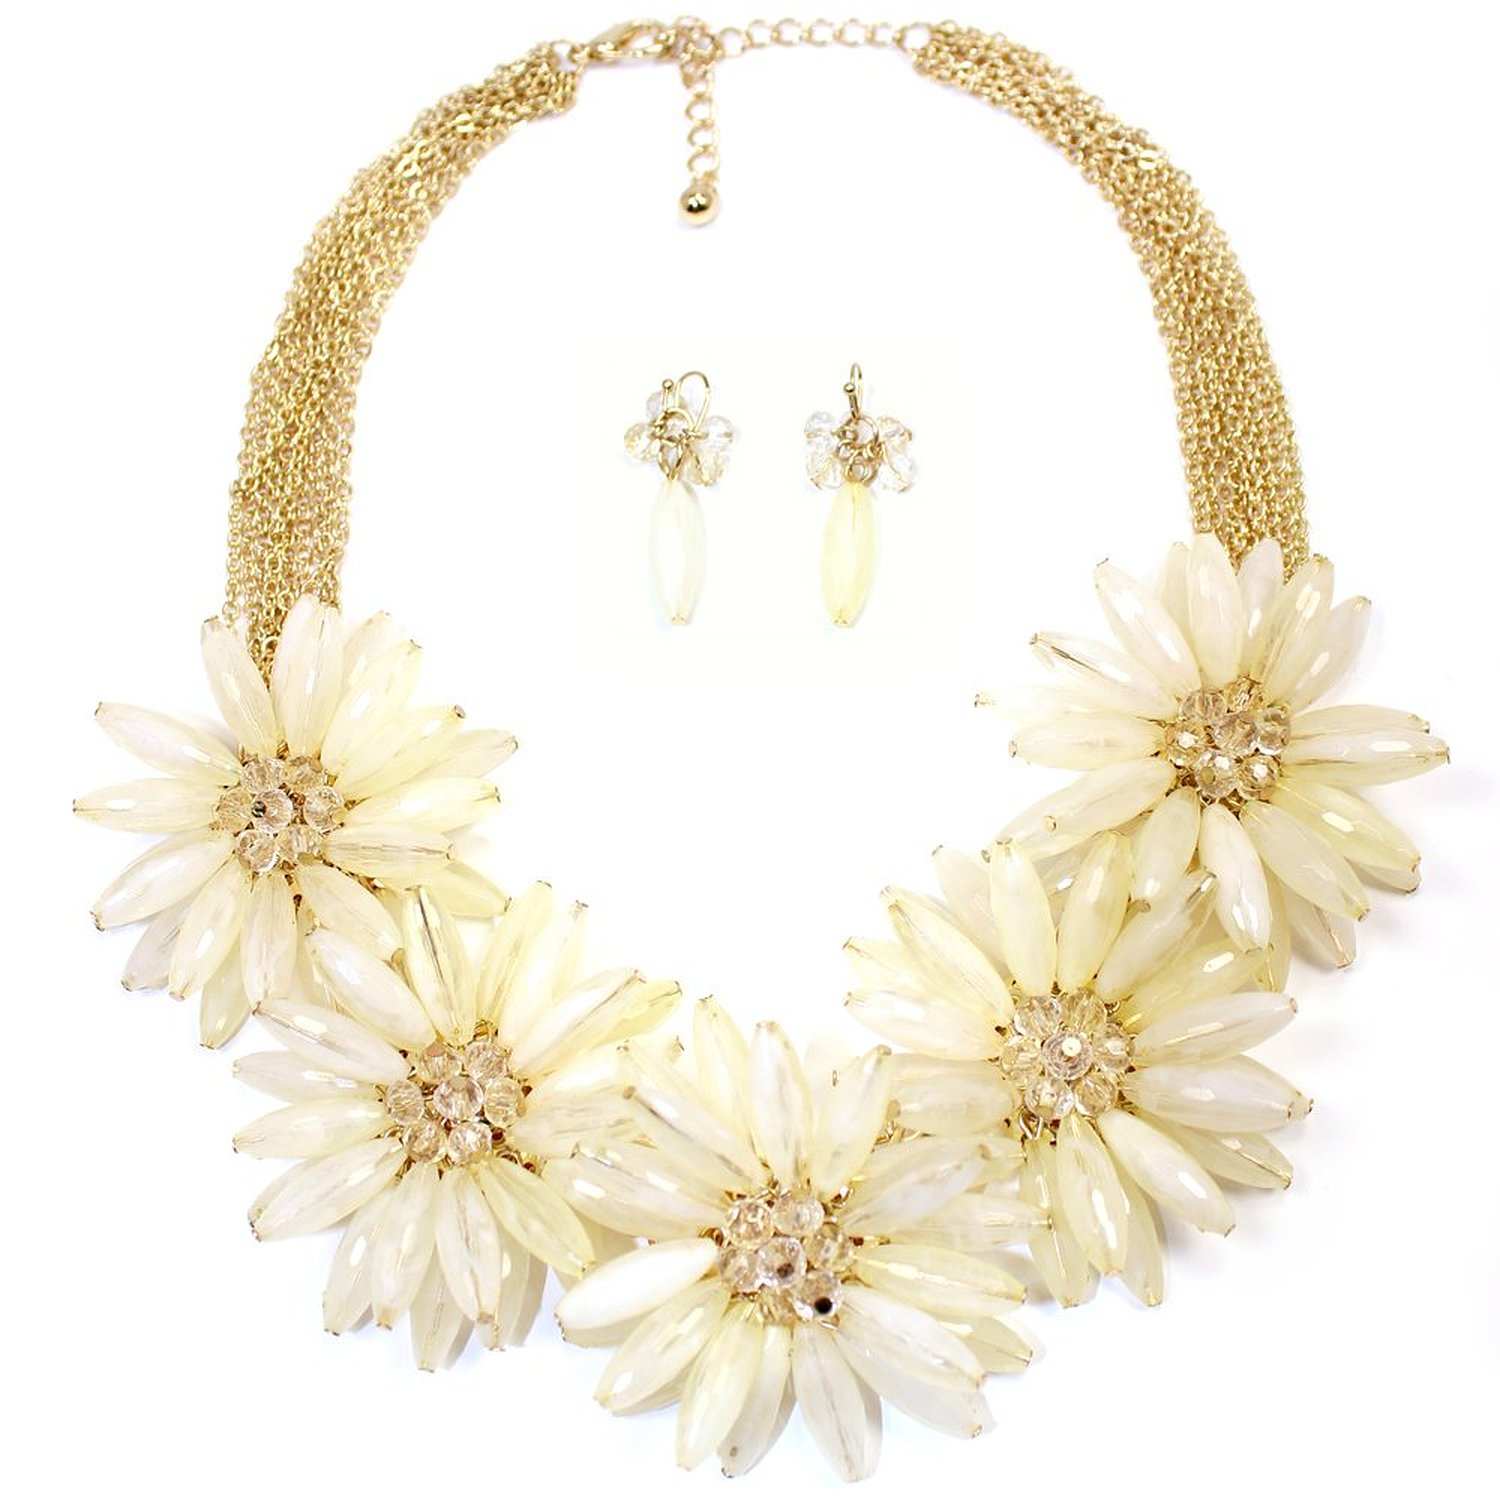 Amazon.com: Hugssy Multi Strands Pendant Flowers Statement Necklace Earrings Set, White (IV): J Crew Necklace: Jewelry